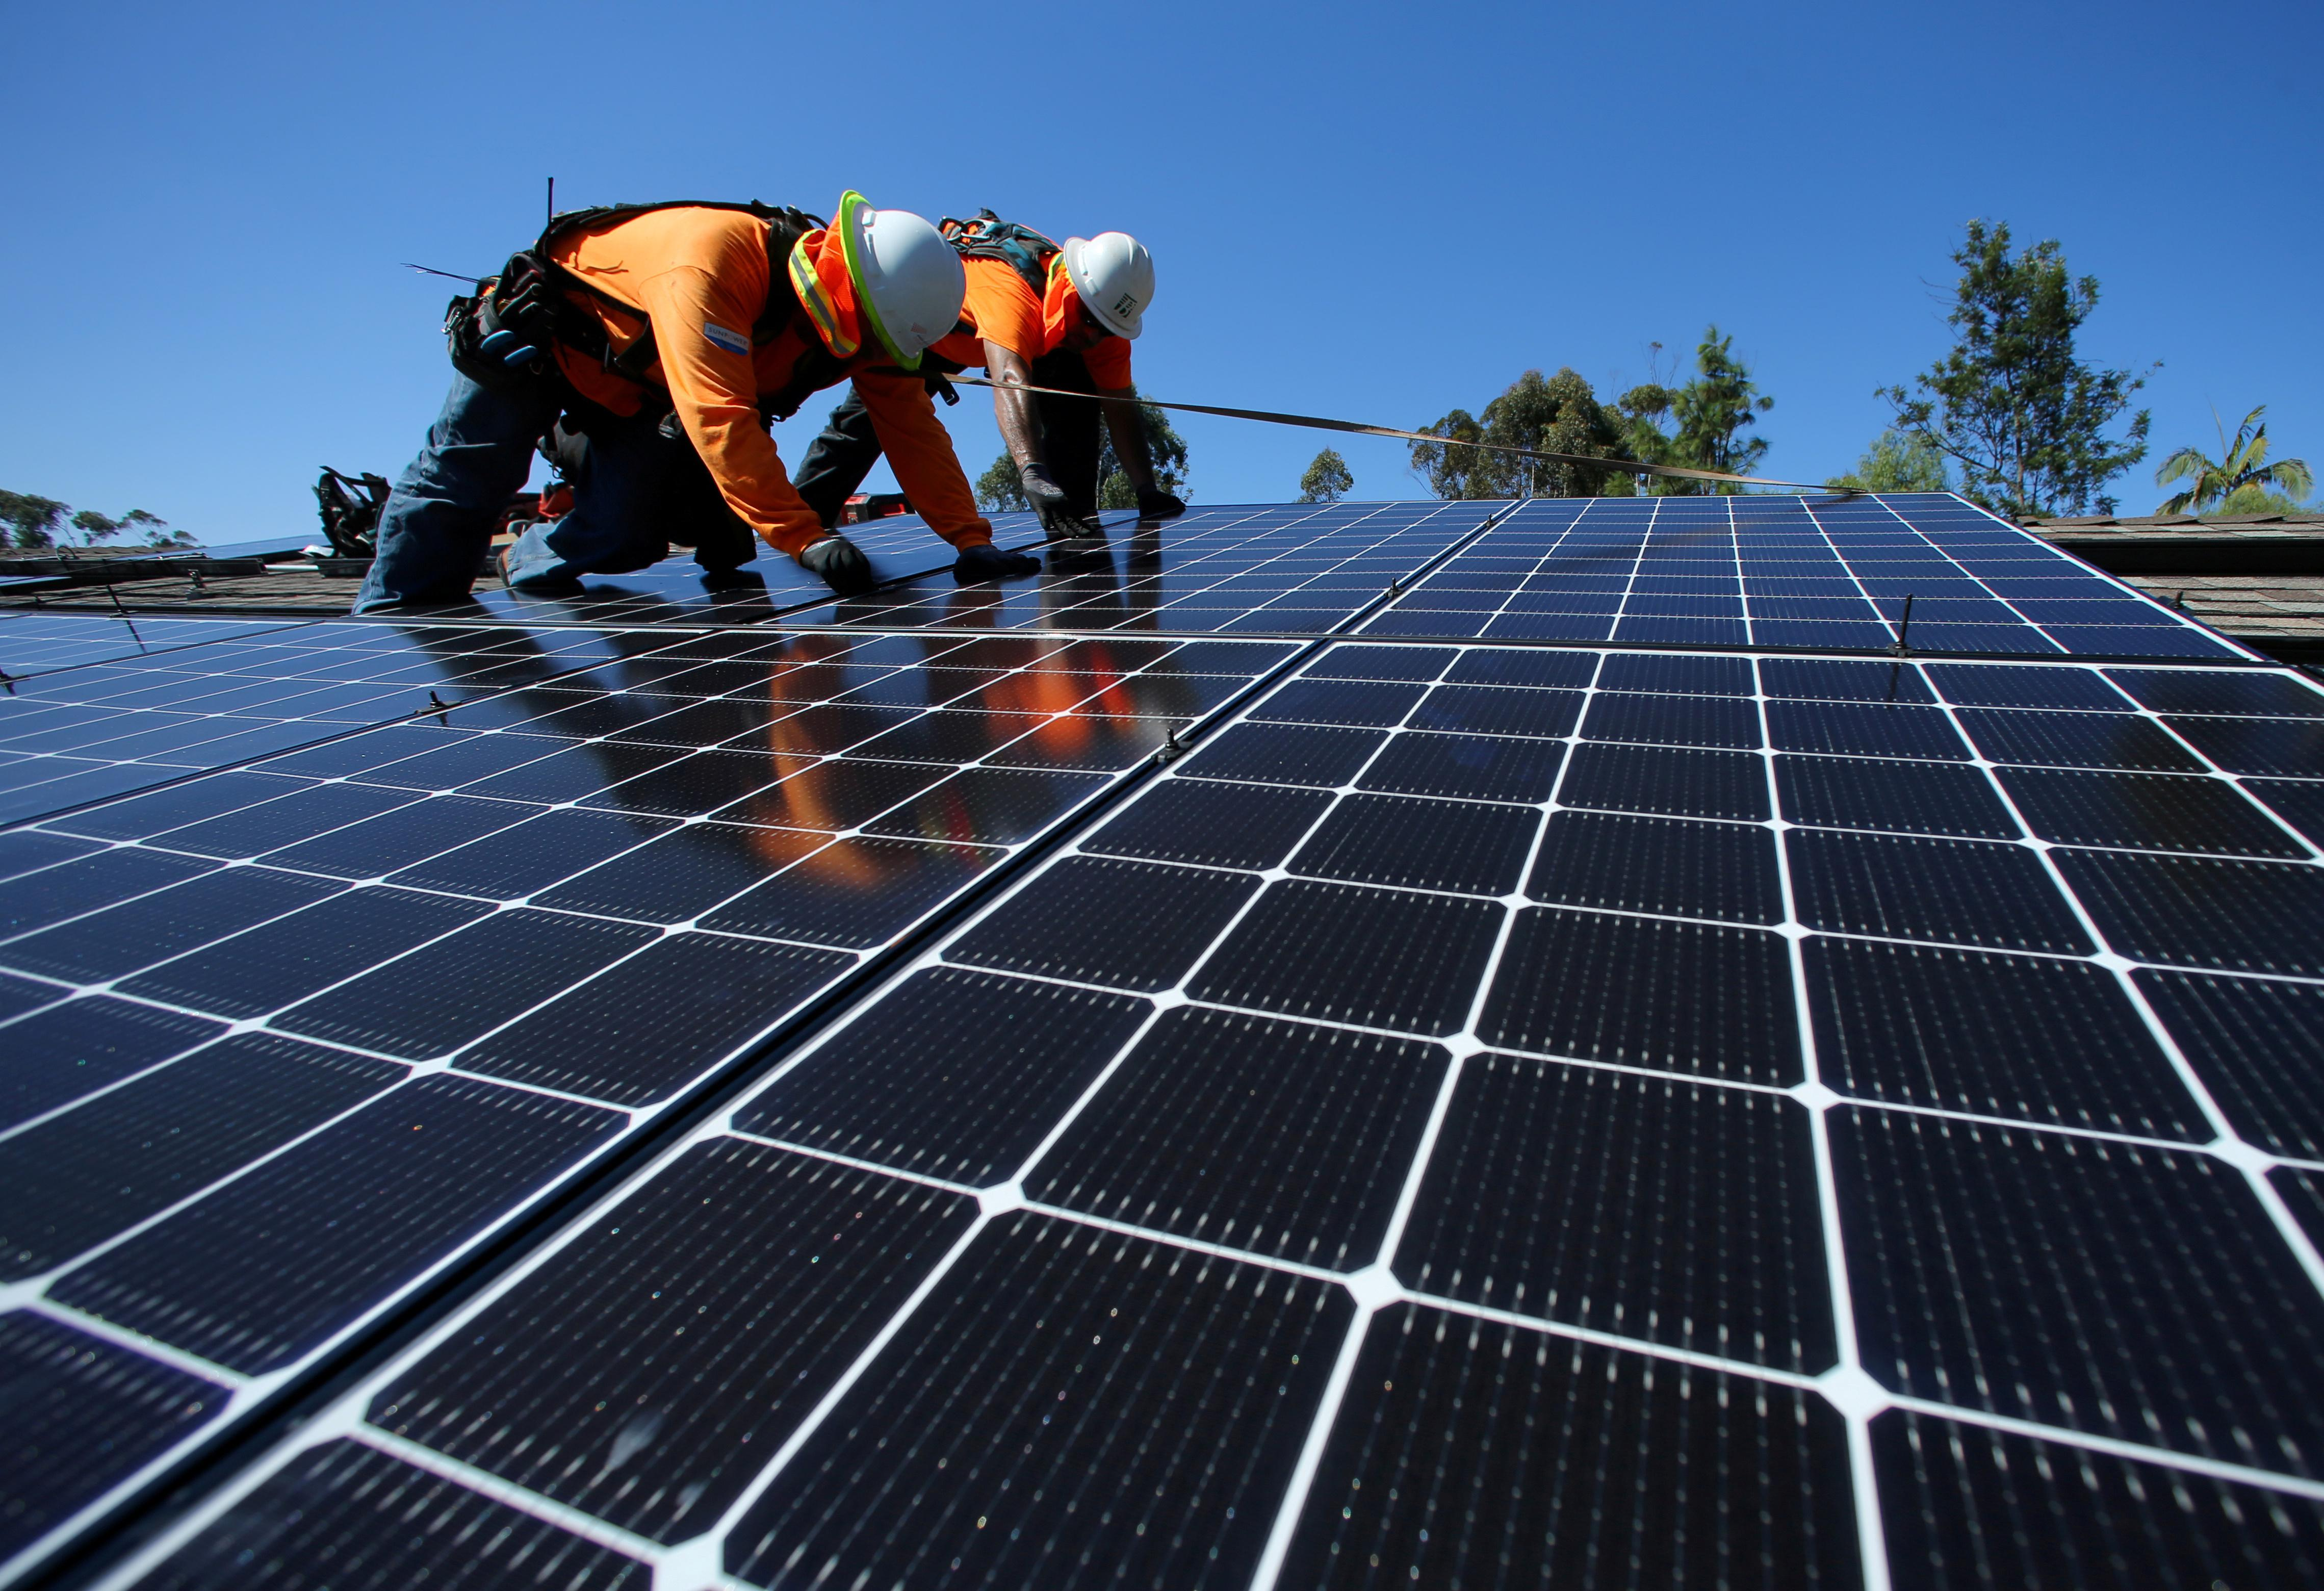 Clean energy shed 106,000 U.S. jobs in March, erasing a year of gains